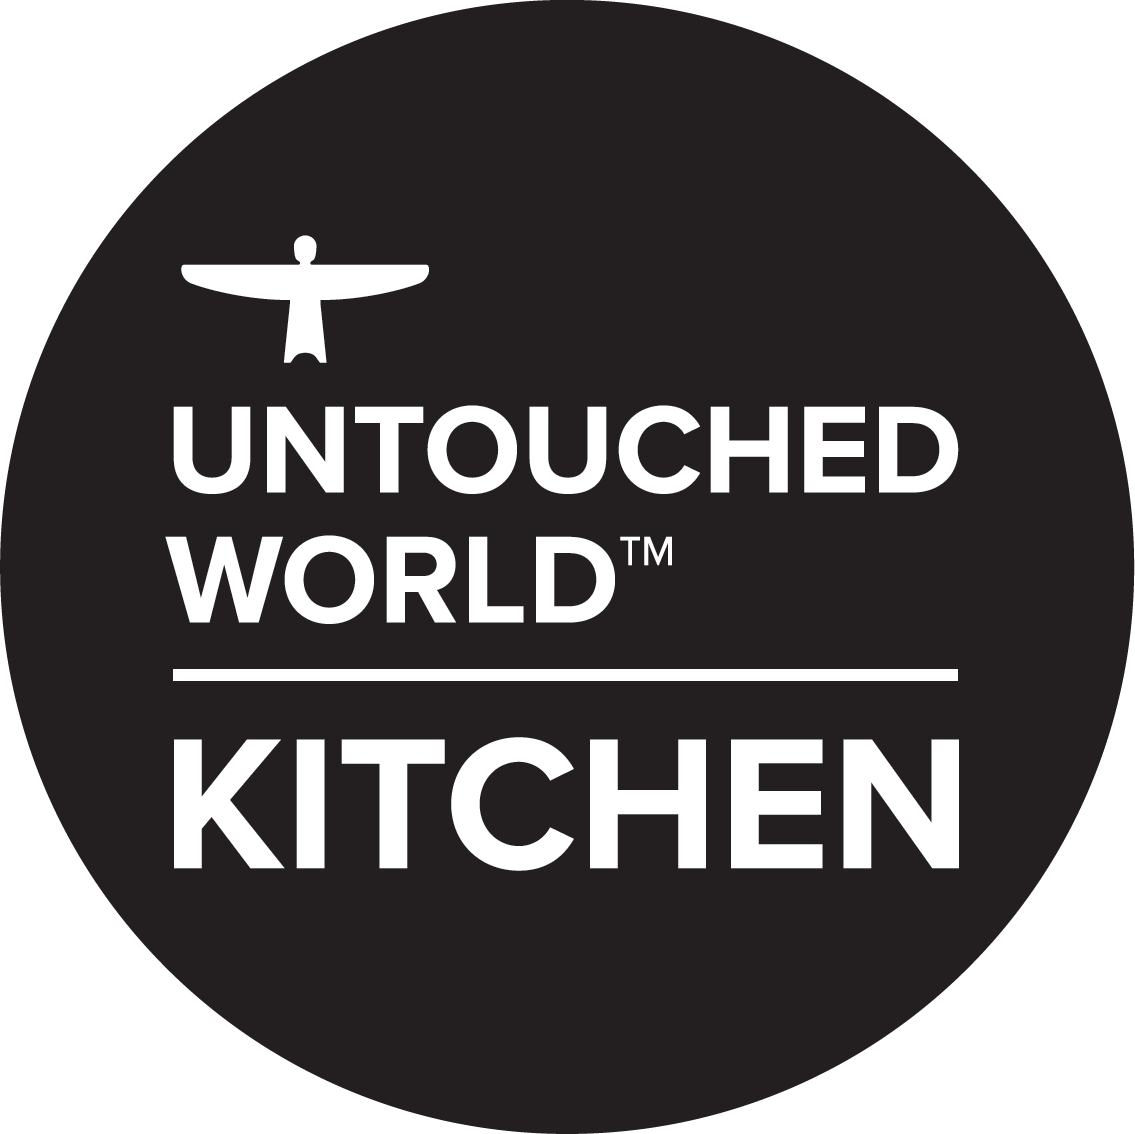 Untouched World™ Kitchen